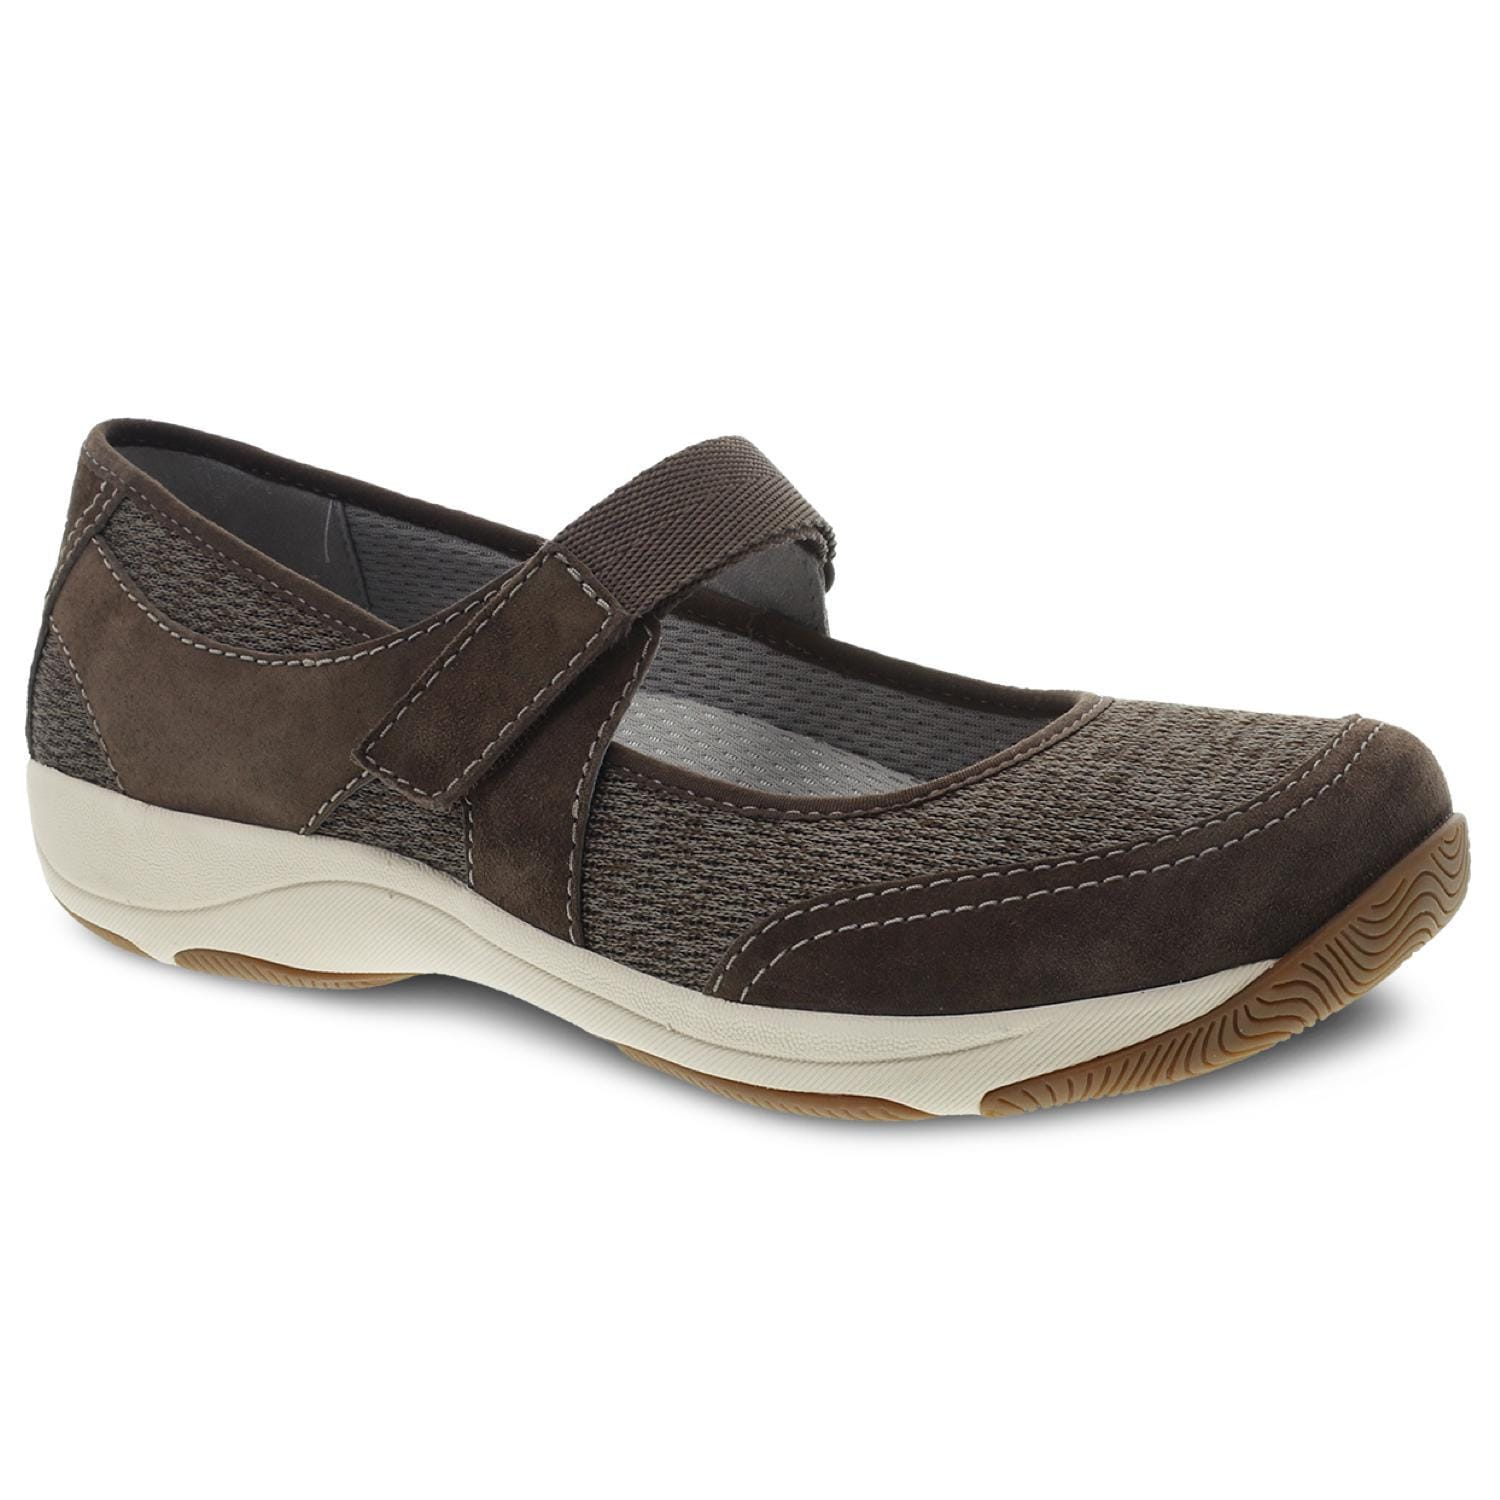 Dansko Hennie Women's Leather Mesh Casual Mary Jane Flat Sporty Shoe